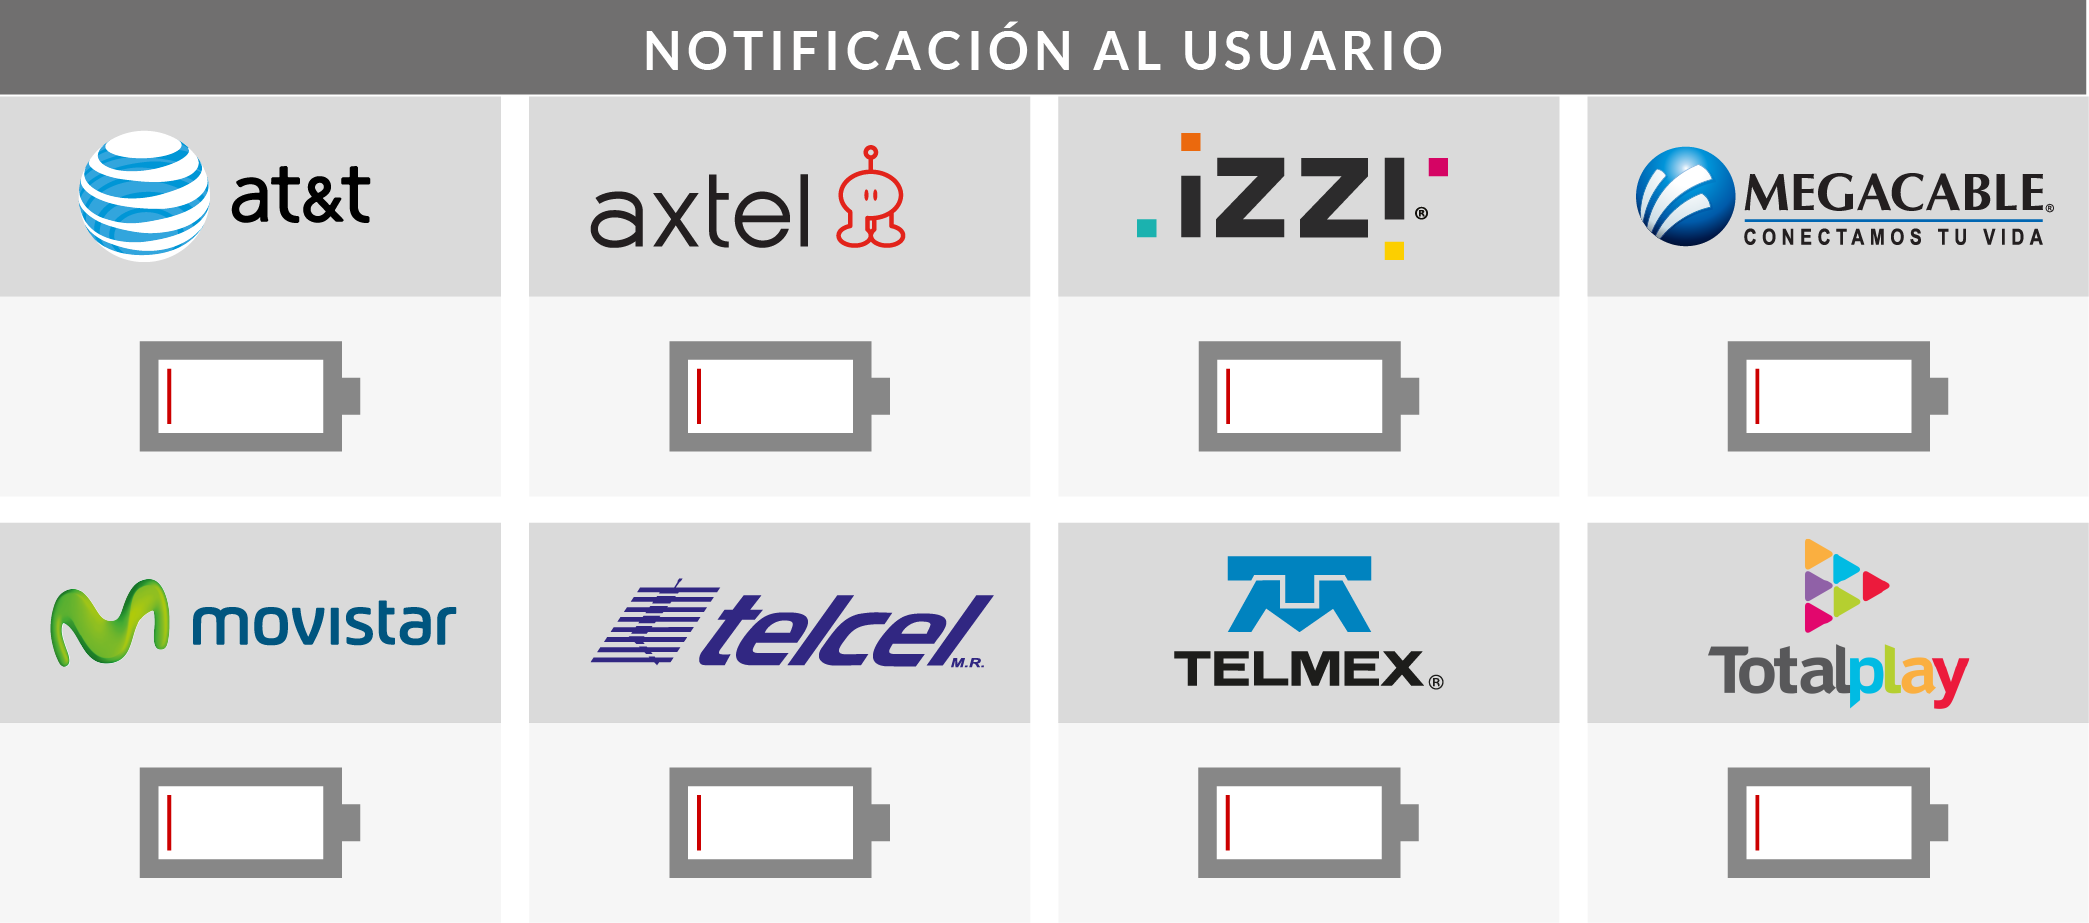 Tabla 04_NOTIFICACION